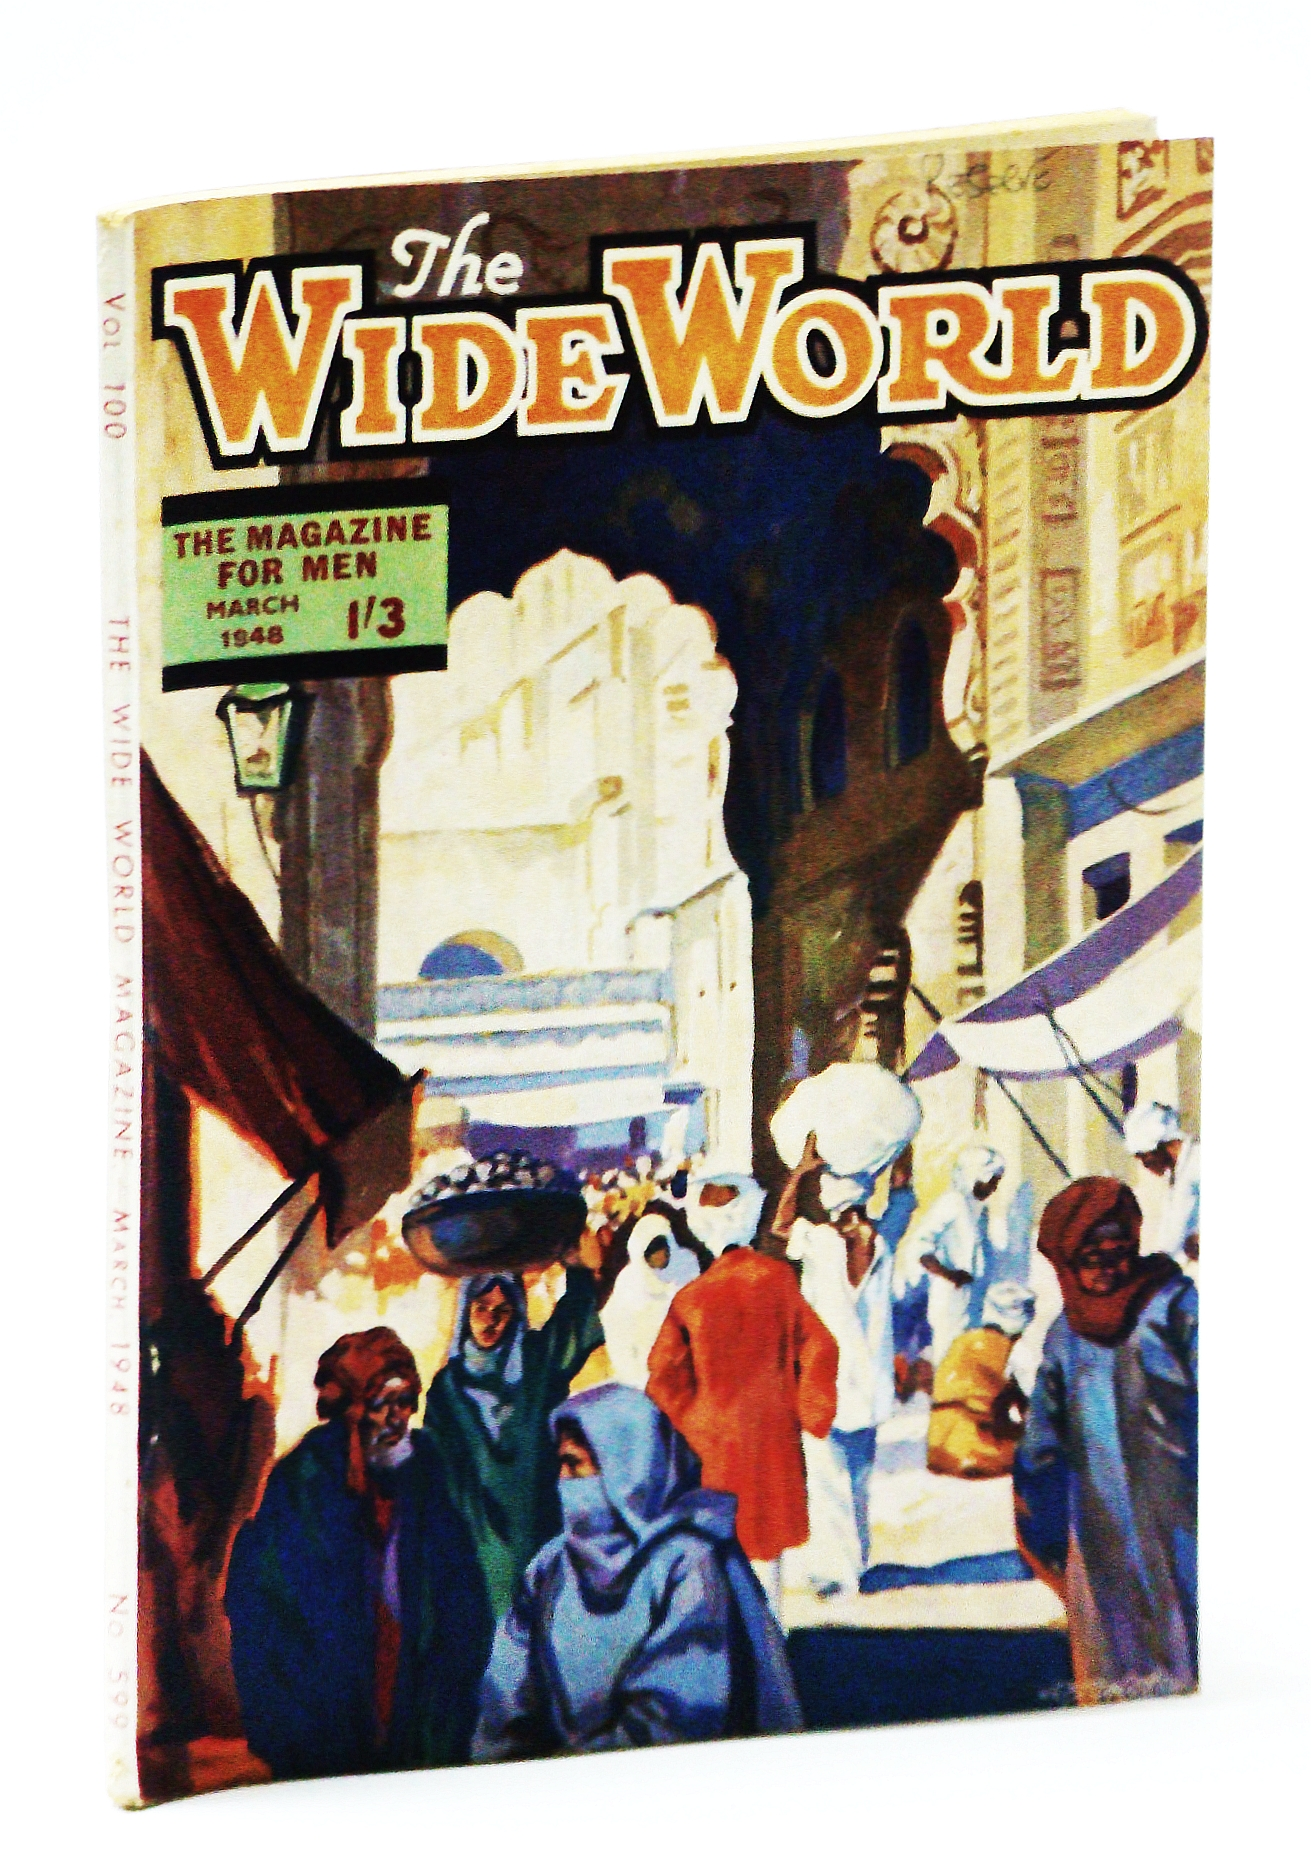 Image for The Wide World - The Magazine for Men, March (Mar.) 1948 - Tasmanian Robinson Crusoe / Woman Who Walked to Siberia